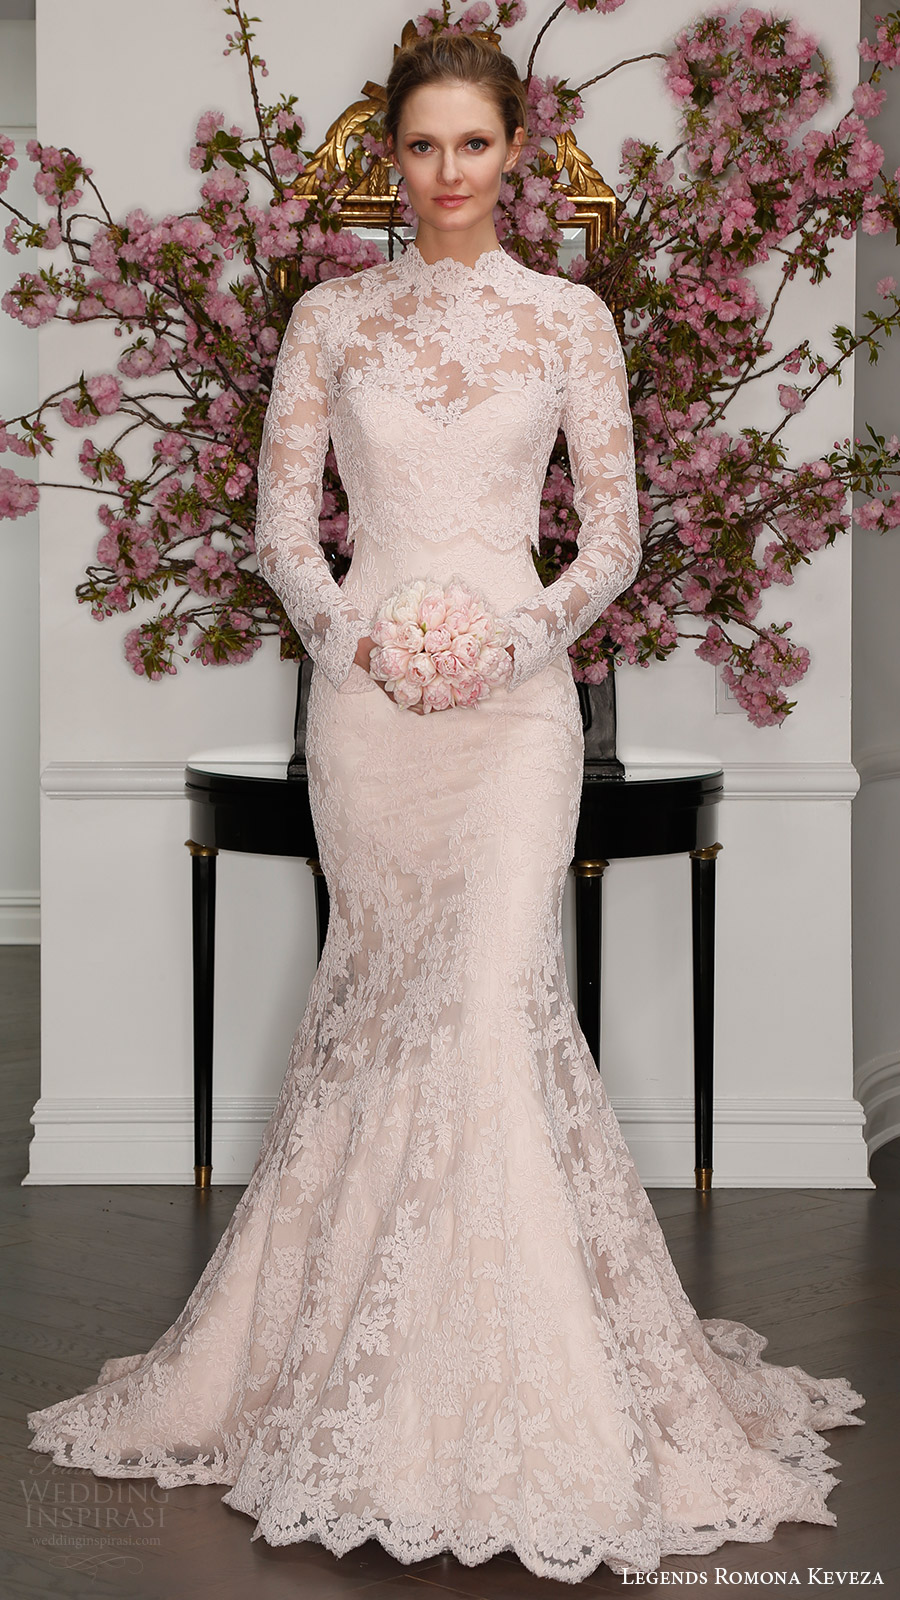 legends romona keveza bridal spring 2017 strapless sweetheart lace trumpet wedding dress (l7125) mv blush color illusion long sleeve high neck blouse